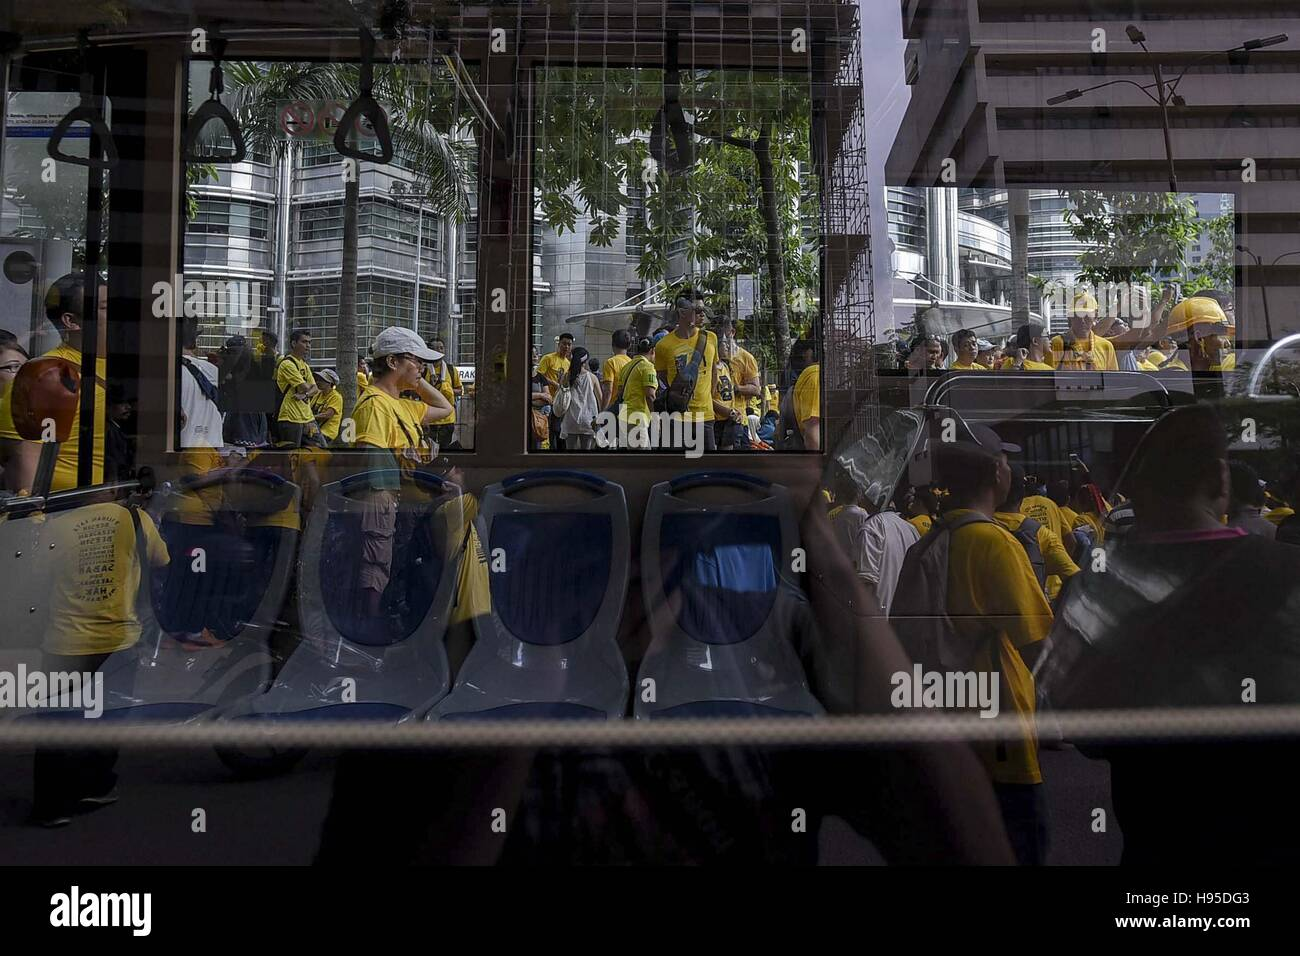 Kl, KL, Malaysia. 19th Nov, 2016. A reflection of supporters of the ''BERSIH'' (Clean) electoral reform coalition Stock Photo